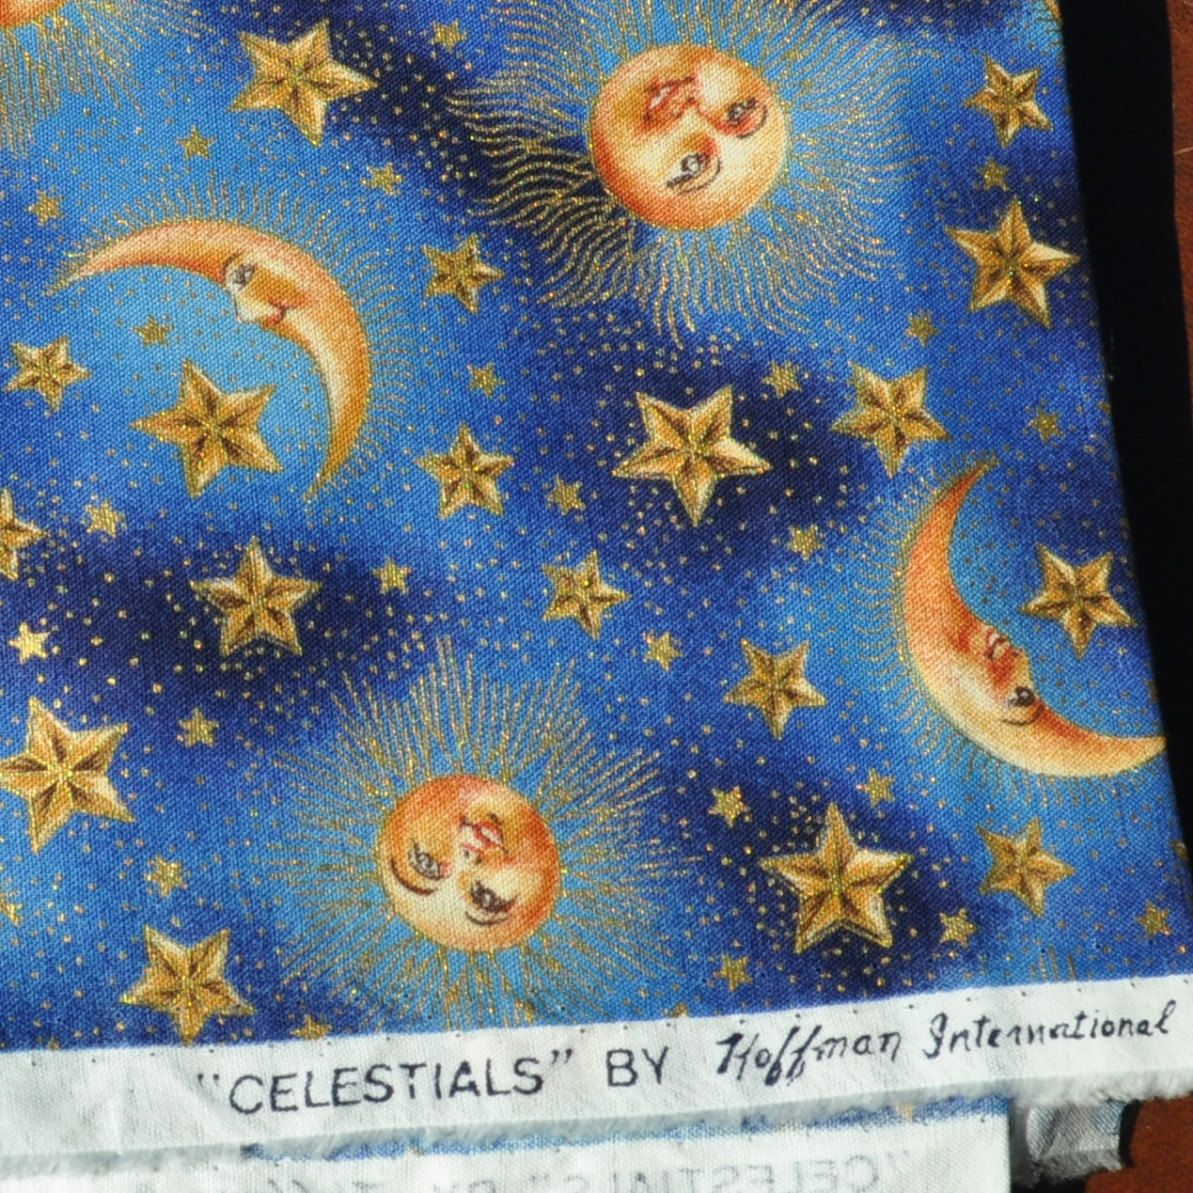 Celestial sun moons stars fabric destash lot of 3 prints 2 34 celestial sun moons stars fabric destash lot of 3 prints 2 34 yards malvernweather Images